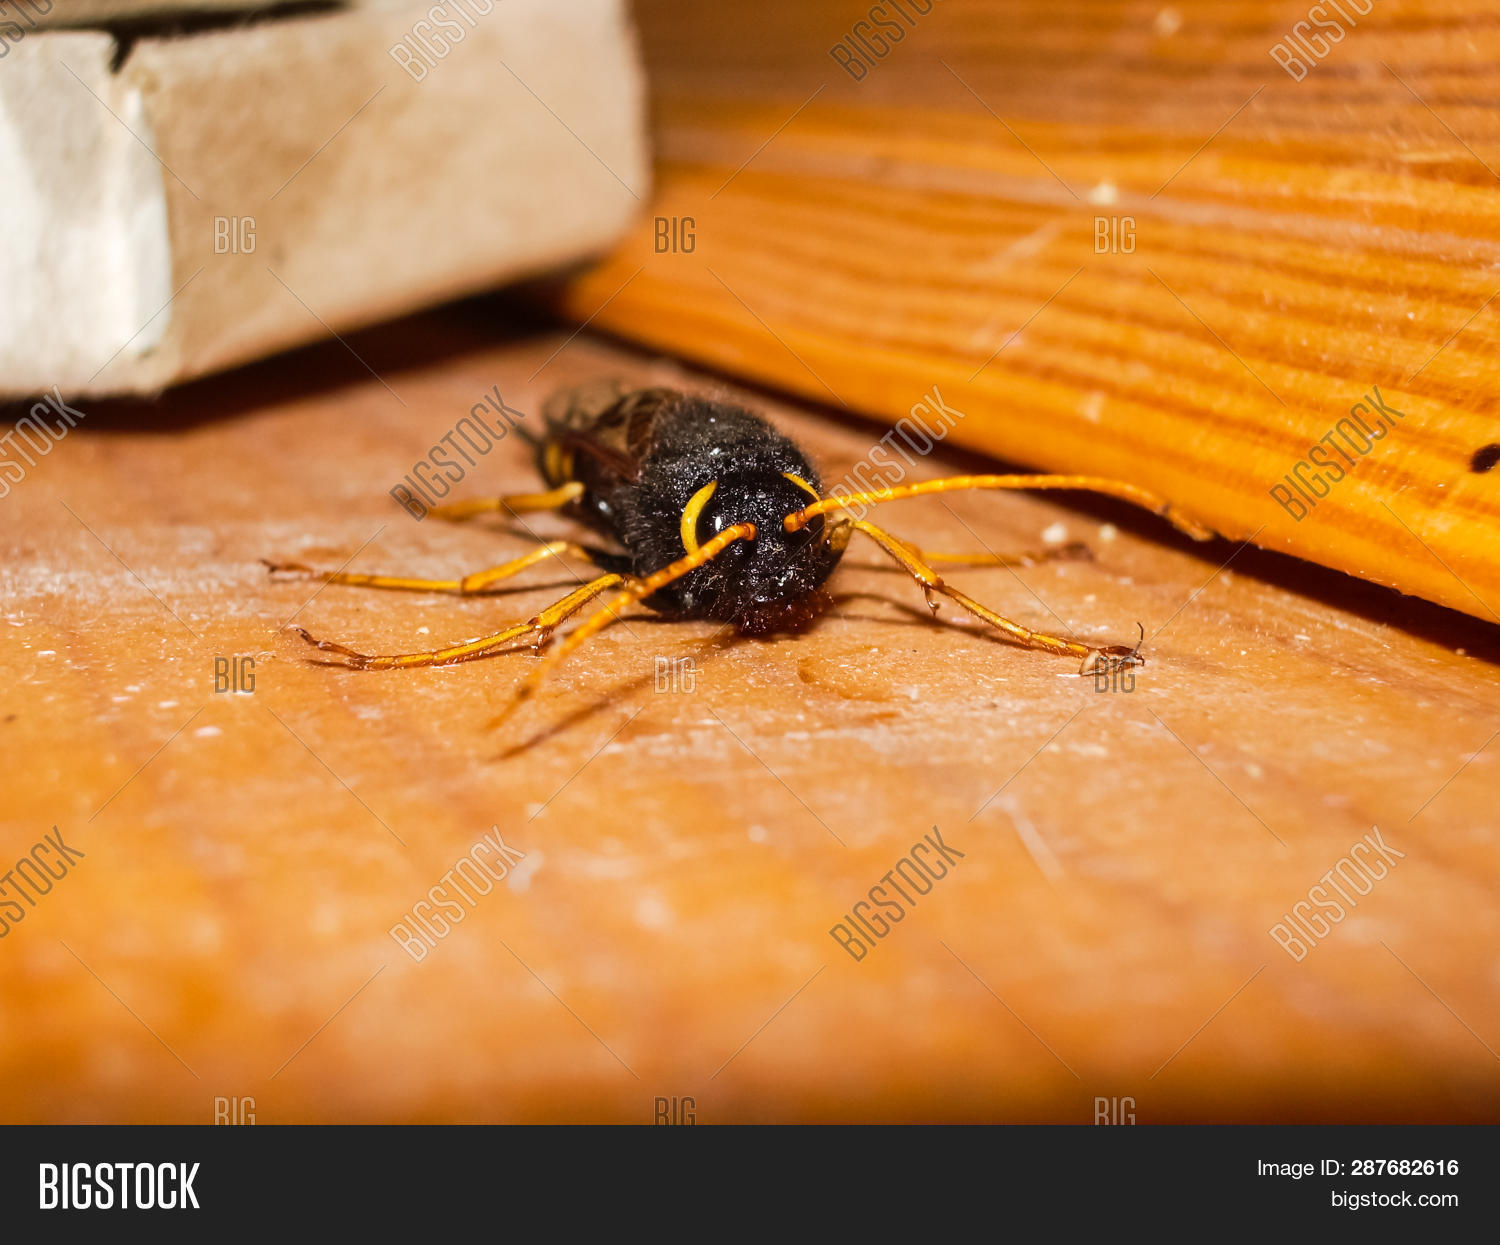 abdomen,animal,antennae,beautiful,bite,black,build,calm,chambers,chitin,clay,close-up,closeup,collect,colony,creature,dangerous,drink,fly,geometric,glide,hexagon,hive,honey,honeycomb,insect,macro,medicine,nature,nest,nobody,outdoor,pain,paunch,paws,pollen,predator,public,rider,sting,stinger,striped,useful,vespiary,wasp,wings,yellow